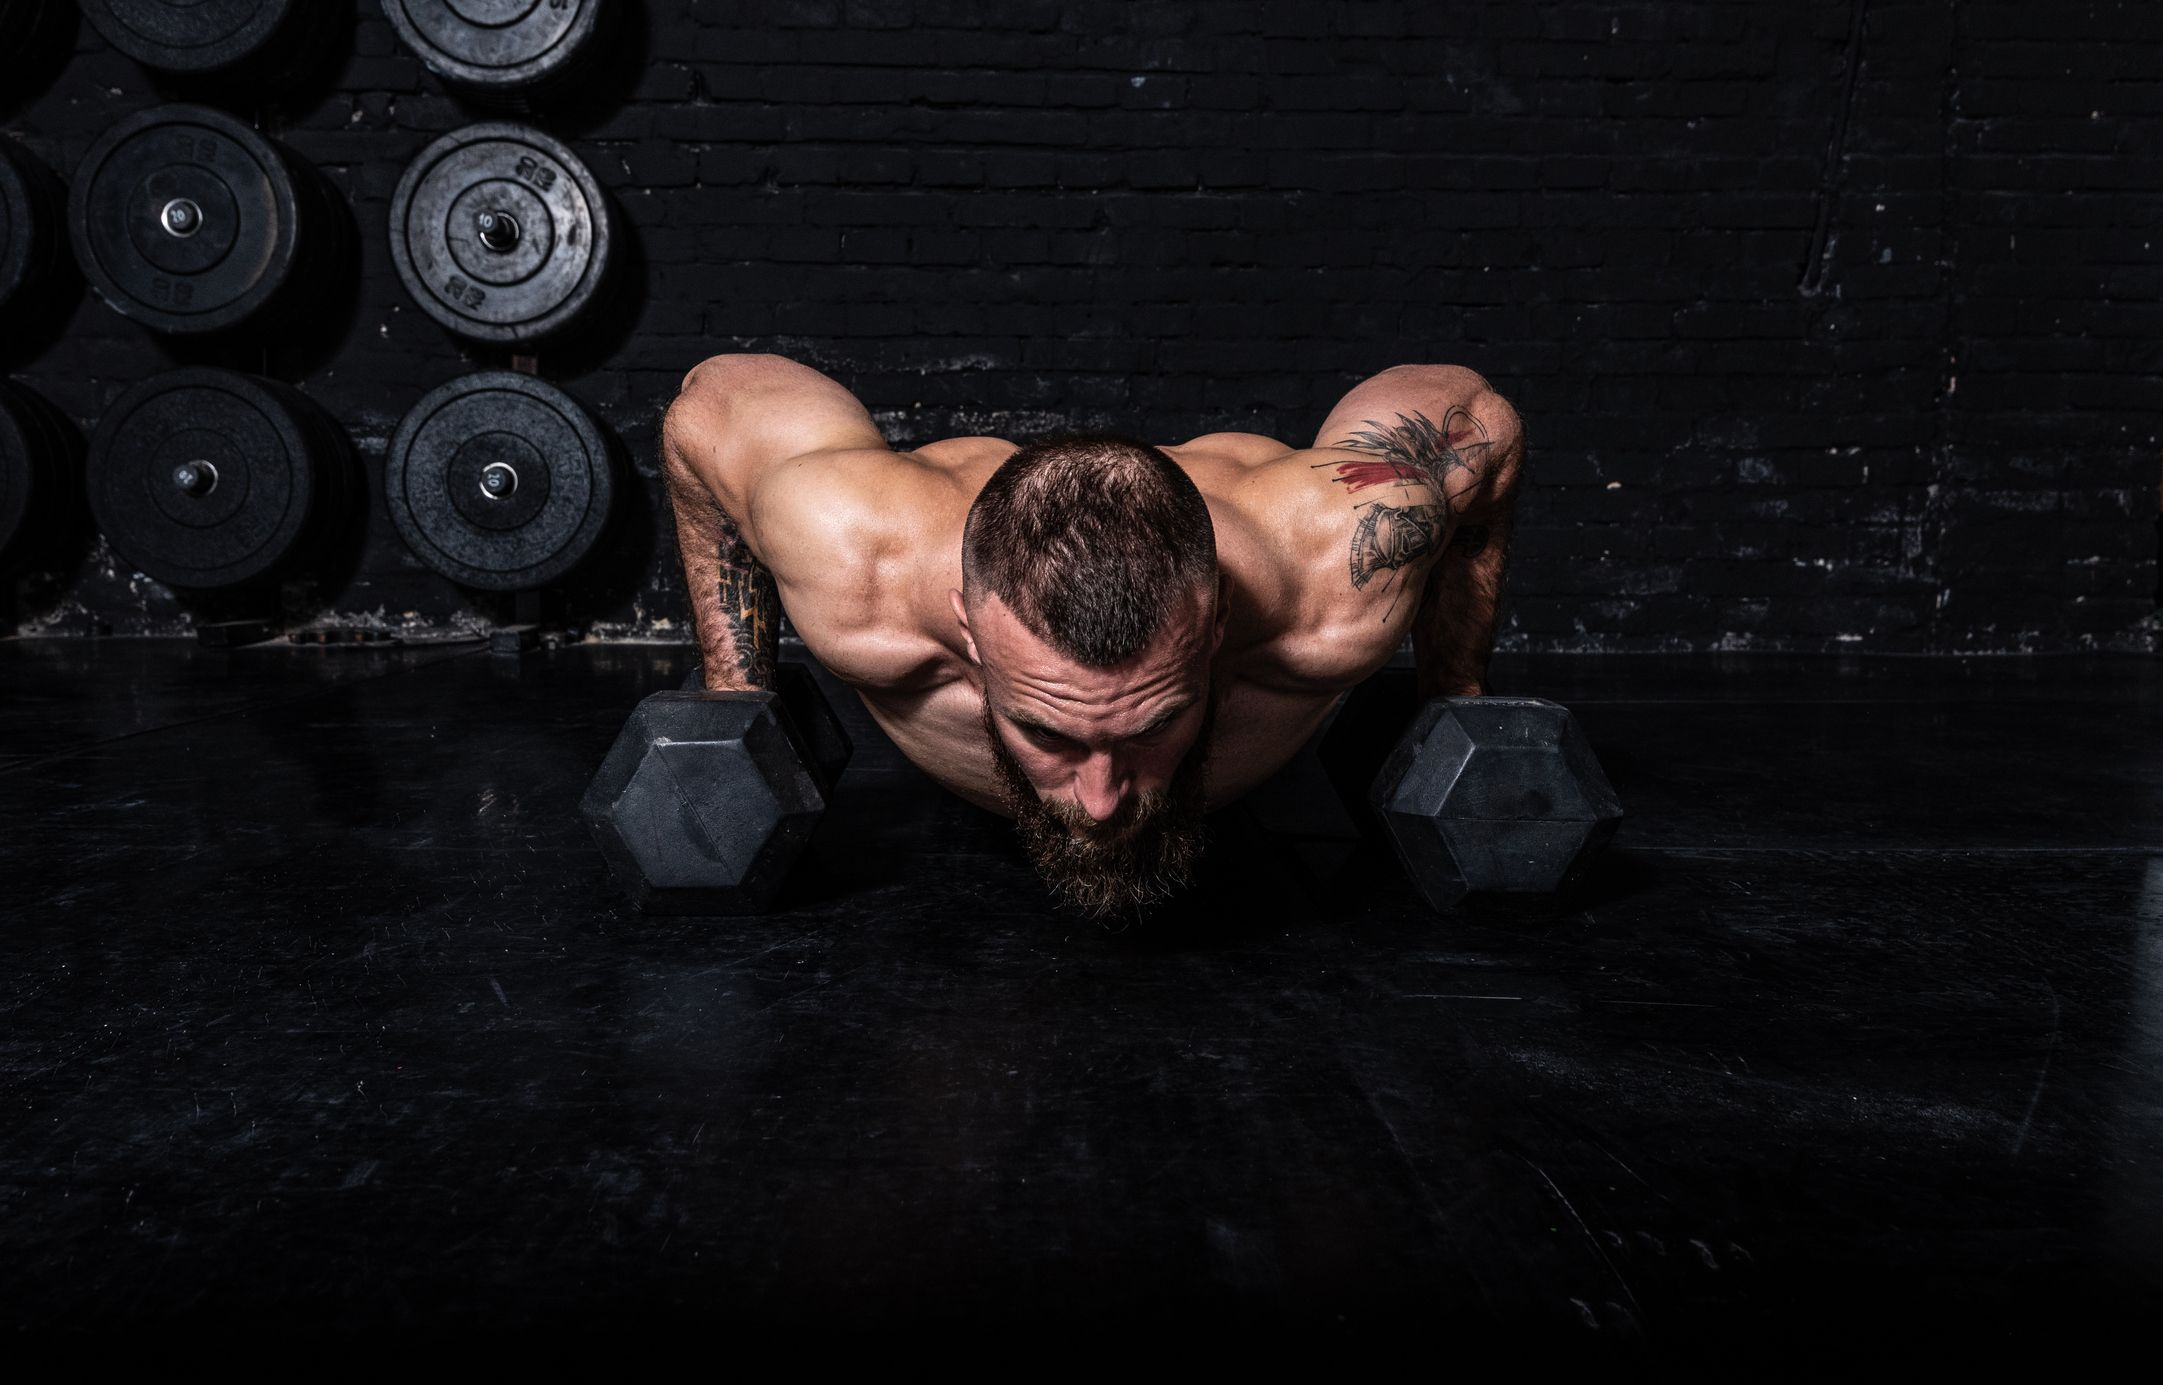 This 6-Move Dumbbell Workout Is Designed to Burn Fat and Build Muscle at Home